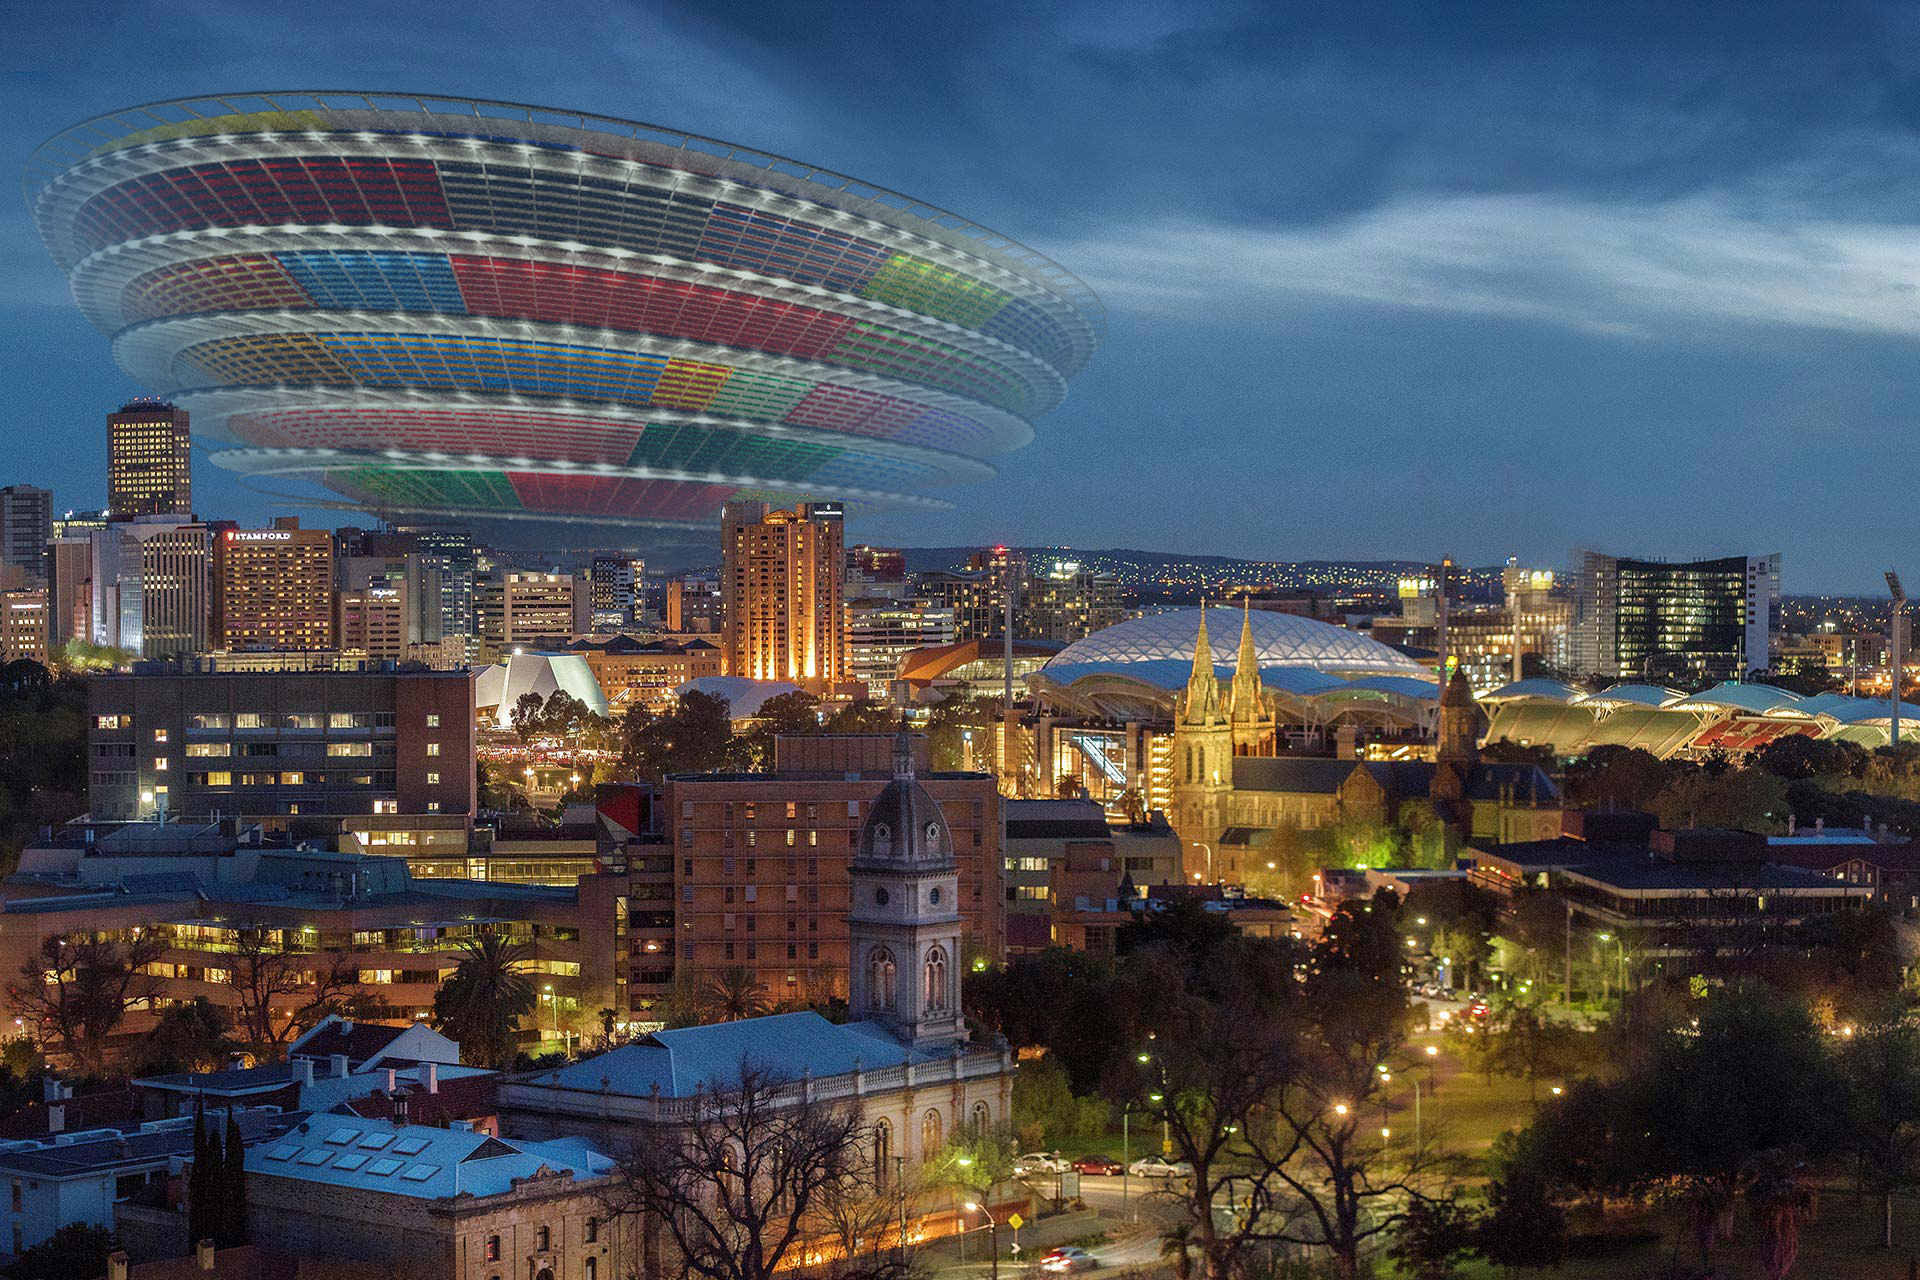 lonely-planet-announcement-adelaide-cityscape.jpg